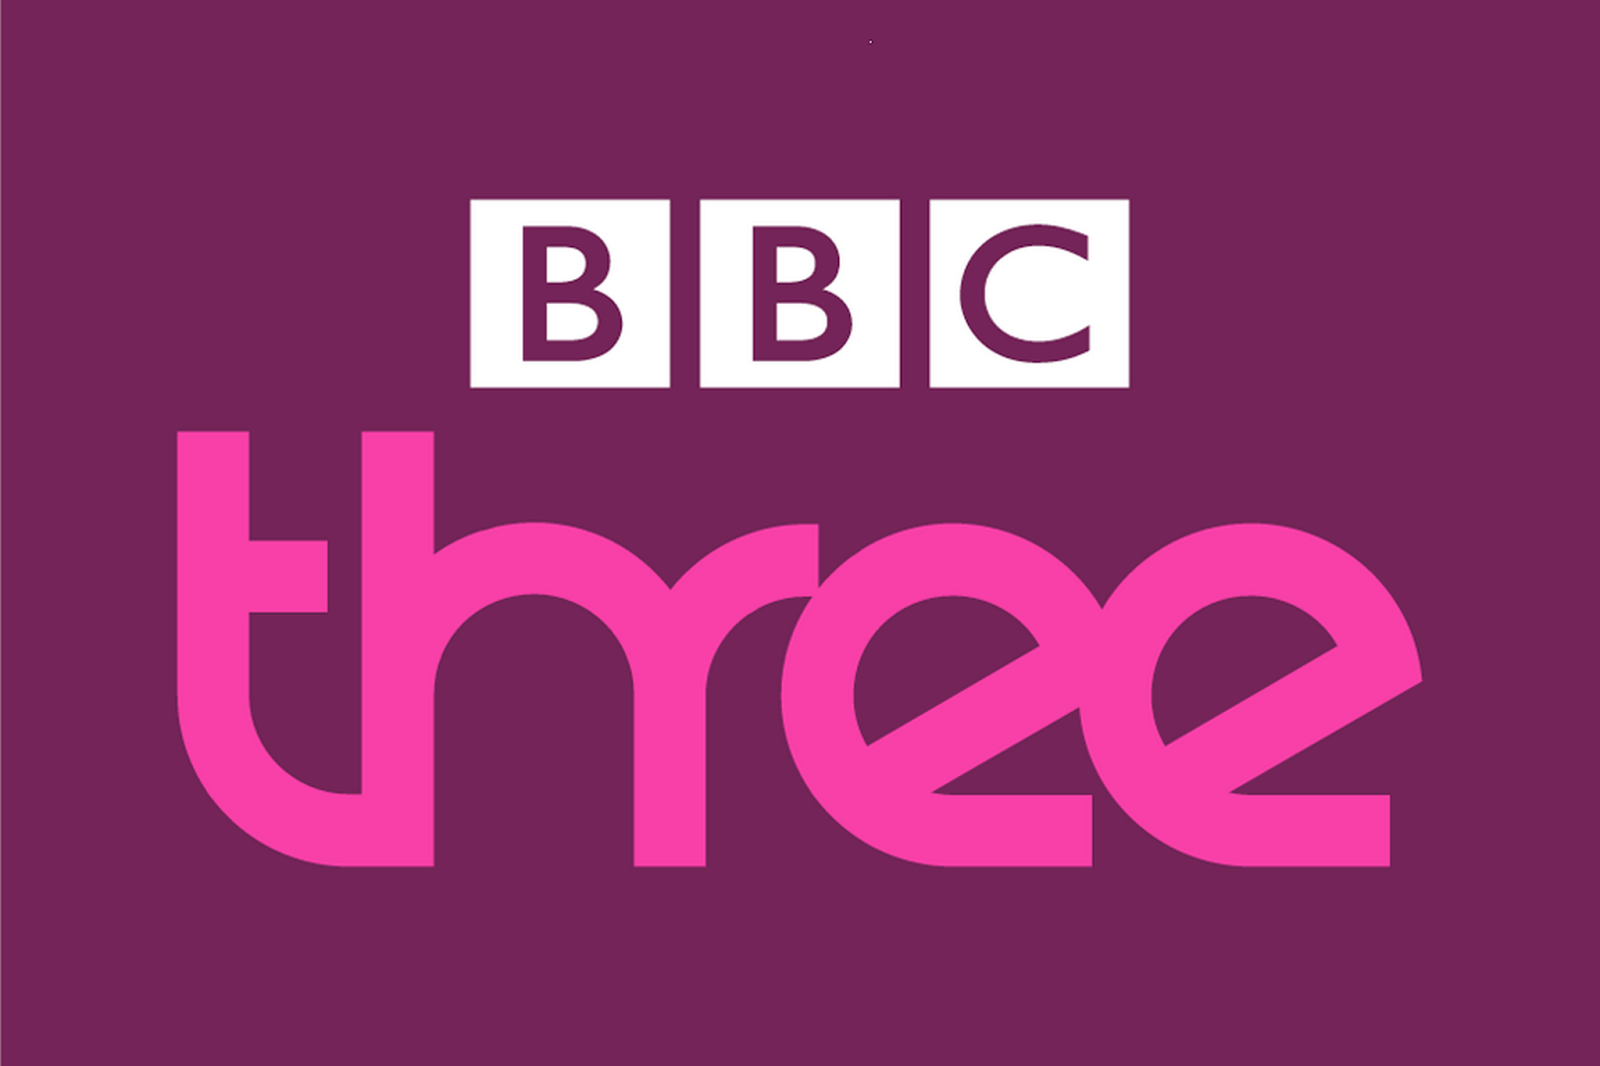 BBC Three | HD TV Channel